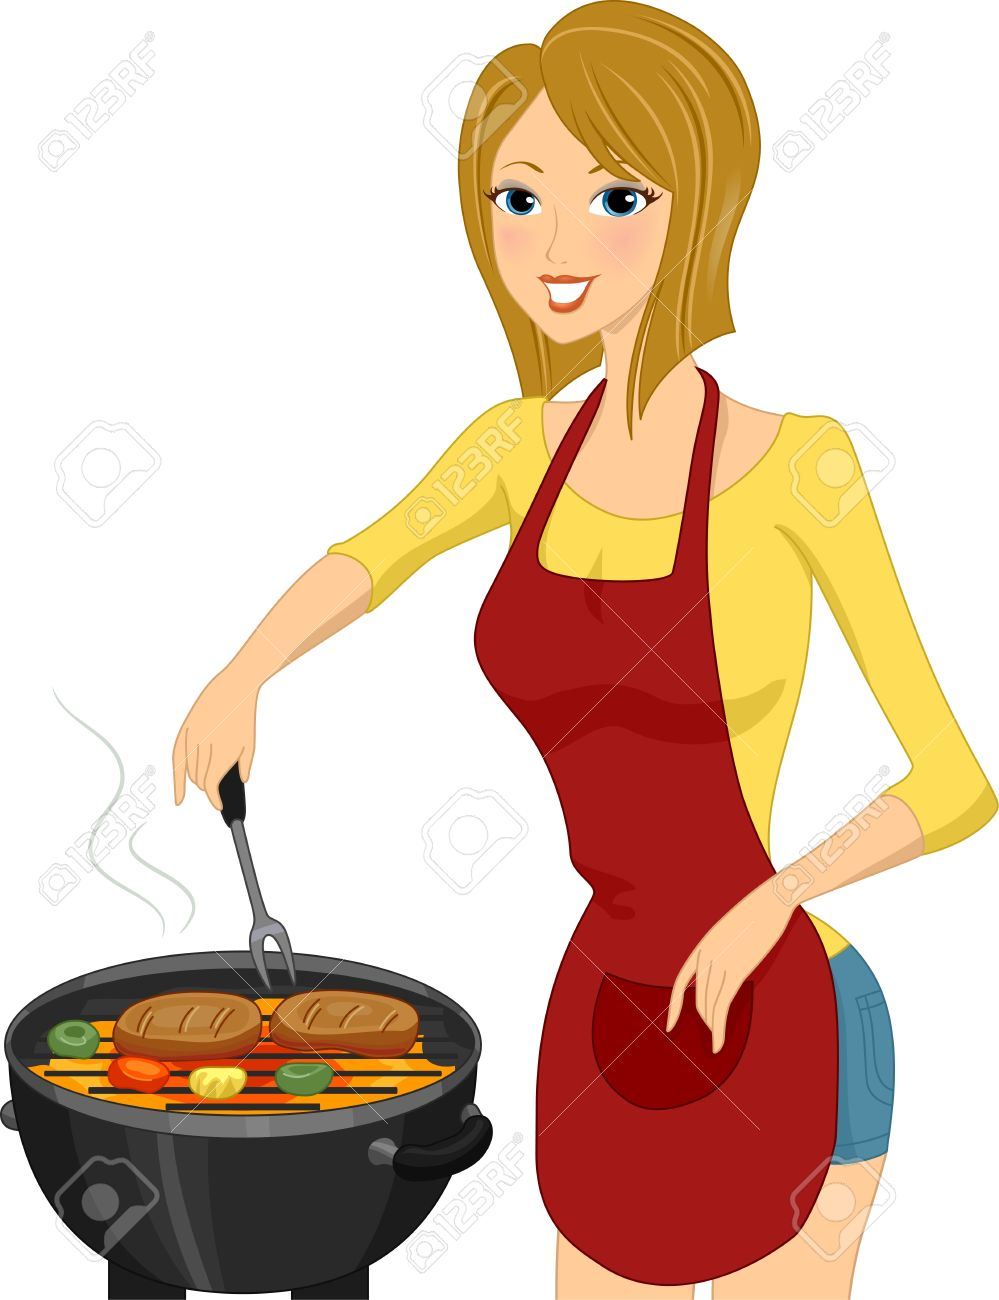 Woman Cooking Clipart | Free download on ClipArtMag